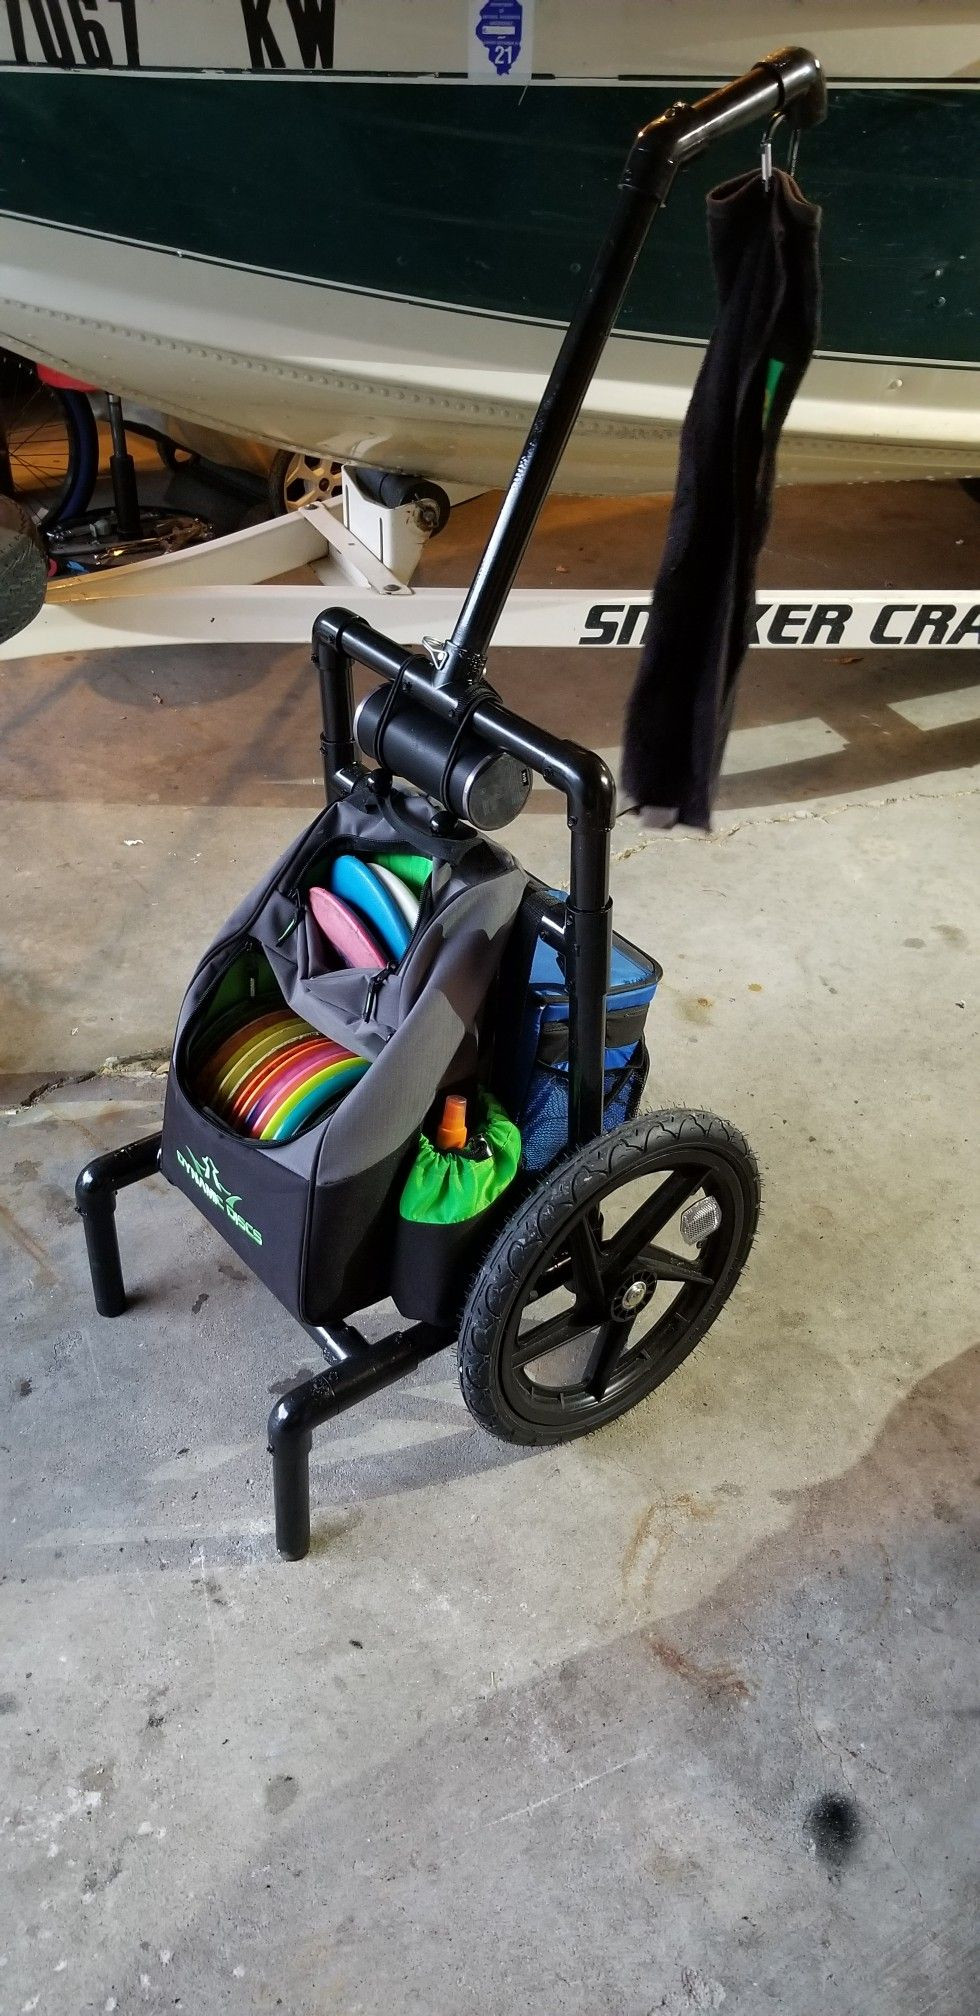 Best ideas about DIY Disc Golf Cart . Save or Pin All terrain disc golf cart DIY disc golf cart Now.